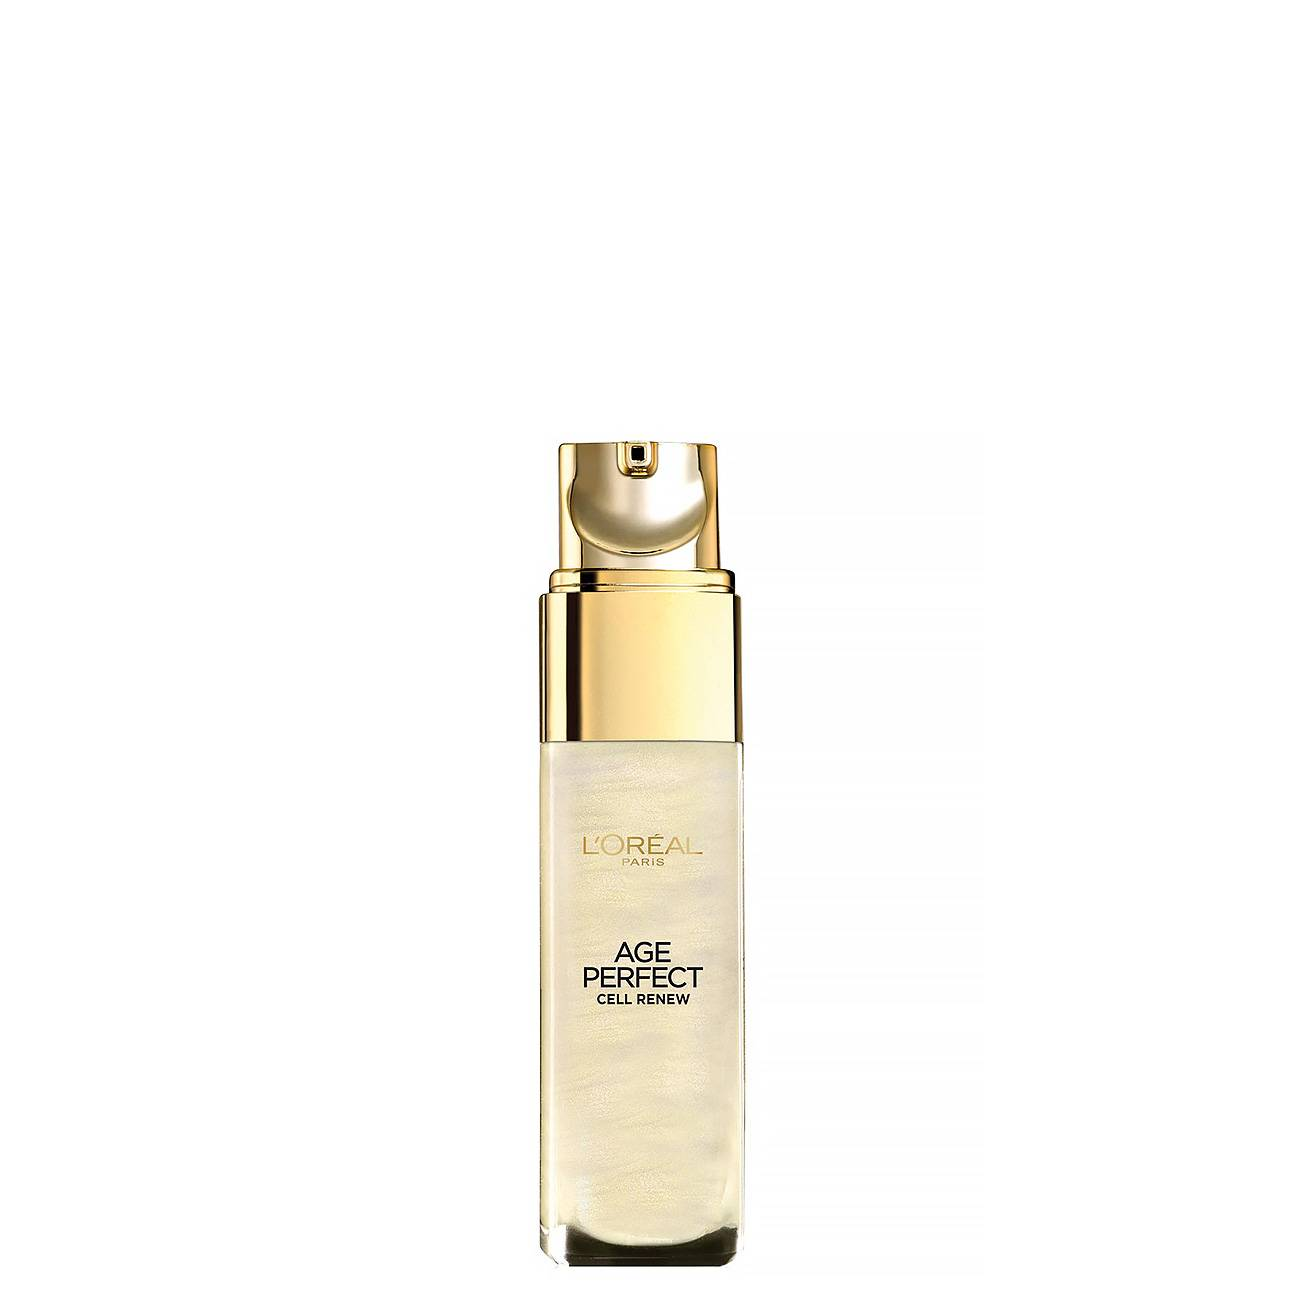 Age Perfect Cell Renew Serum 30 Ml L'Oreal imagine 2021 bestvalue.eu